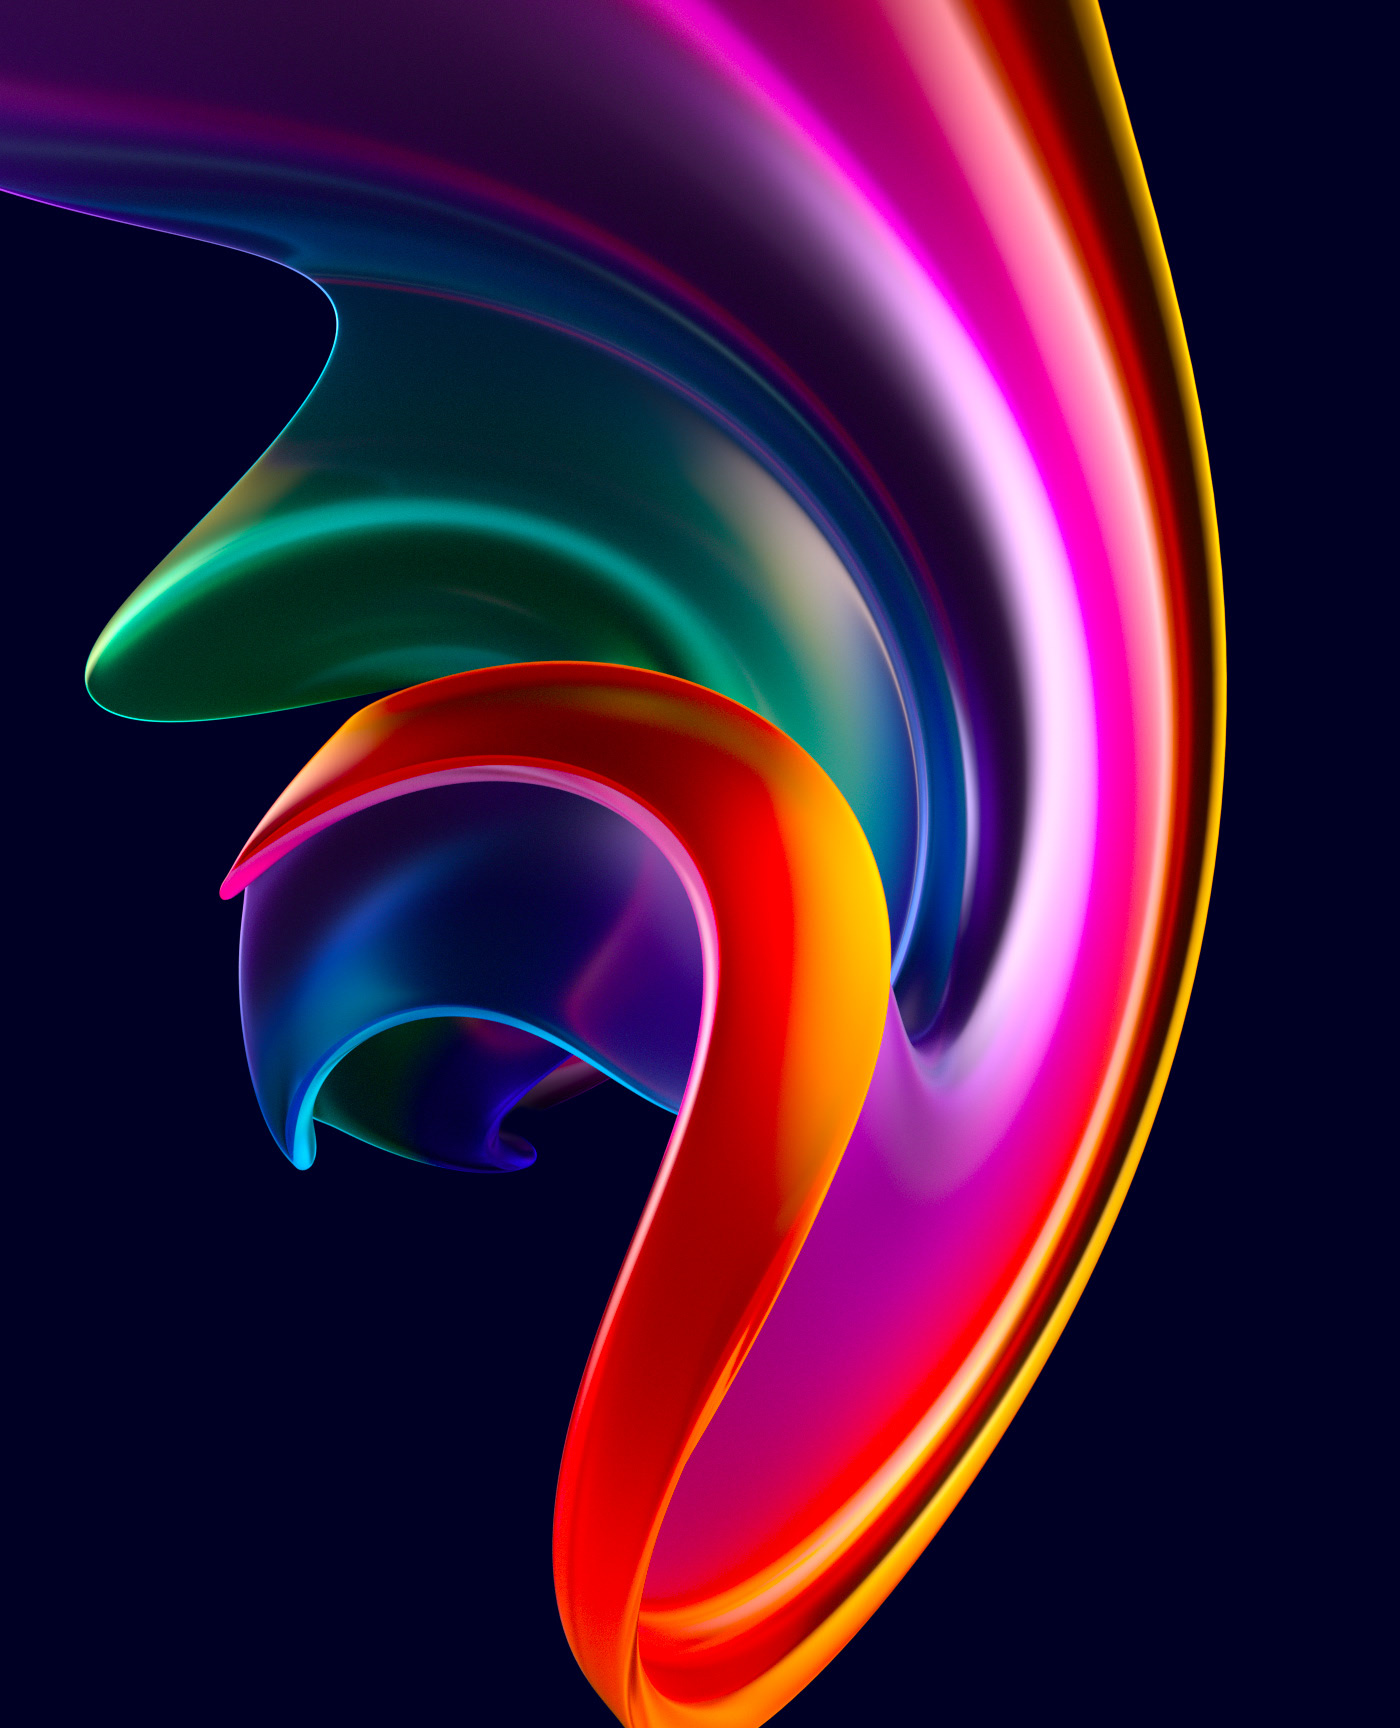 3D Abstract & Colorful Shapes